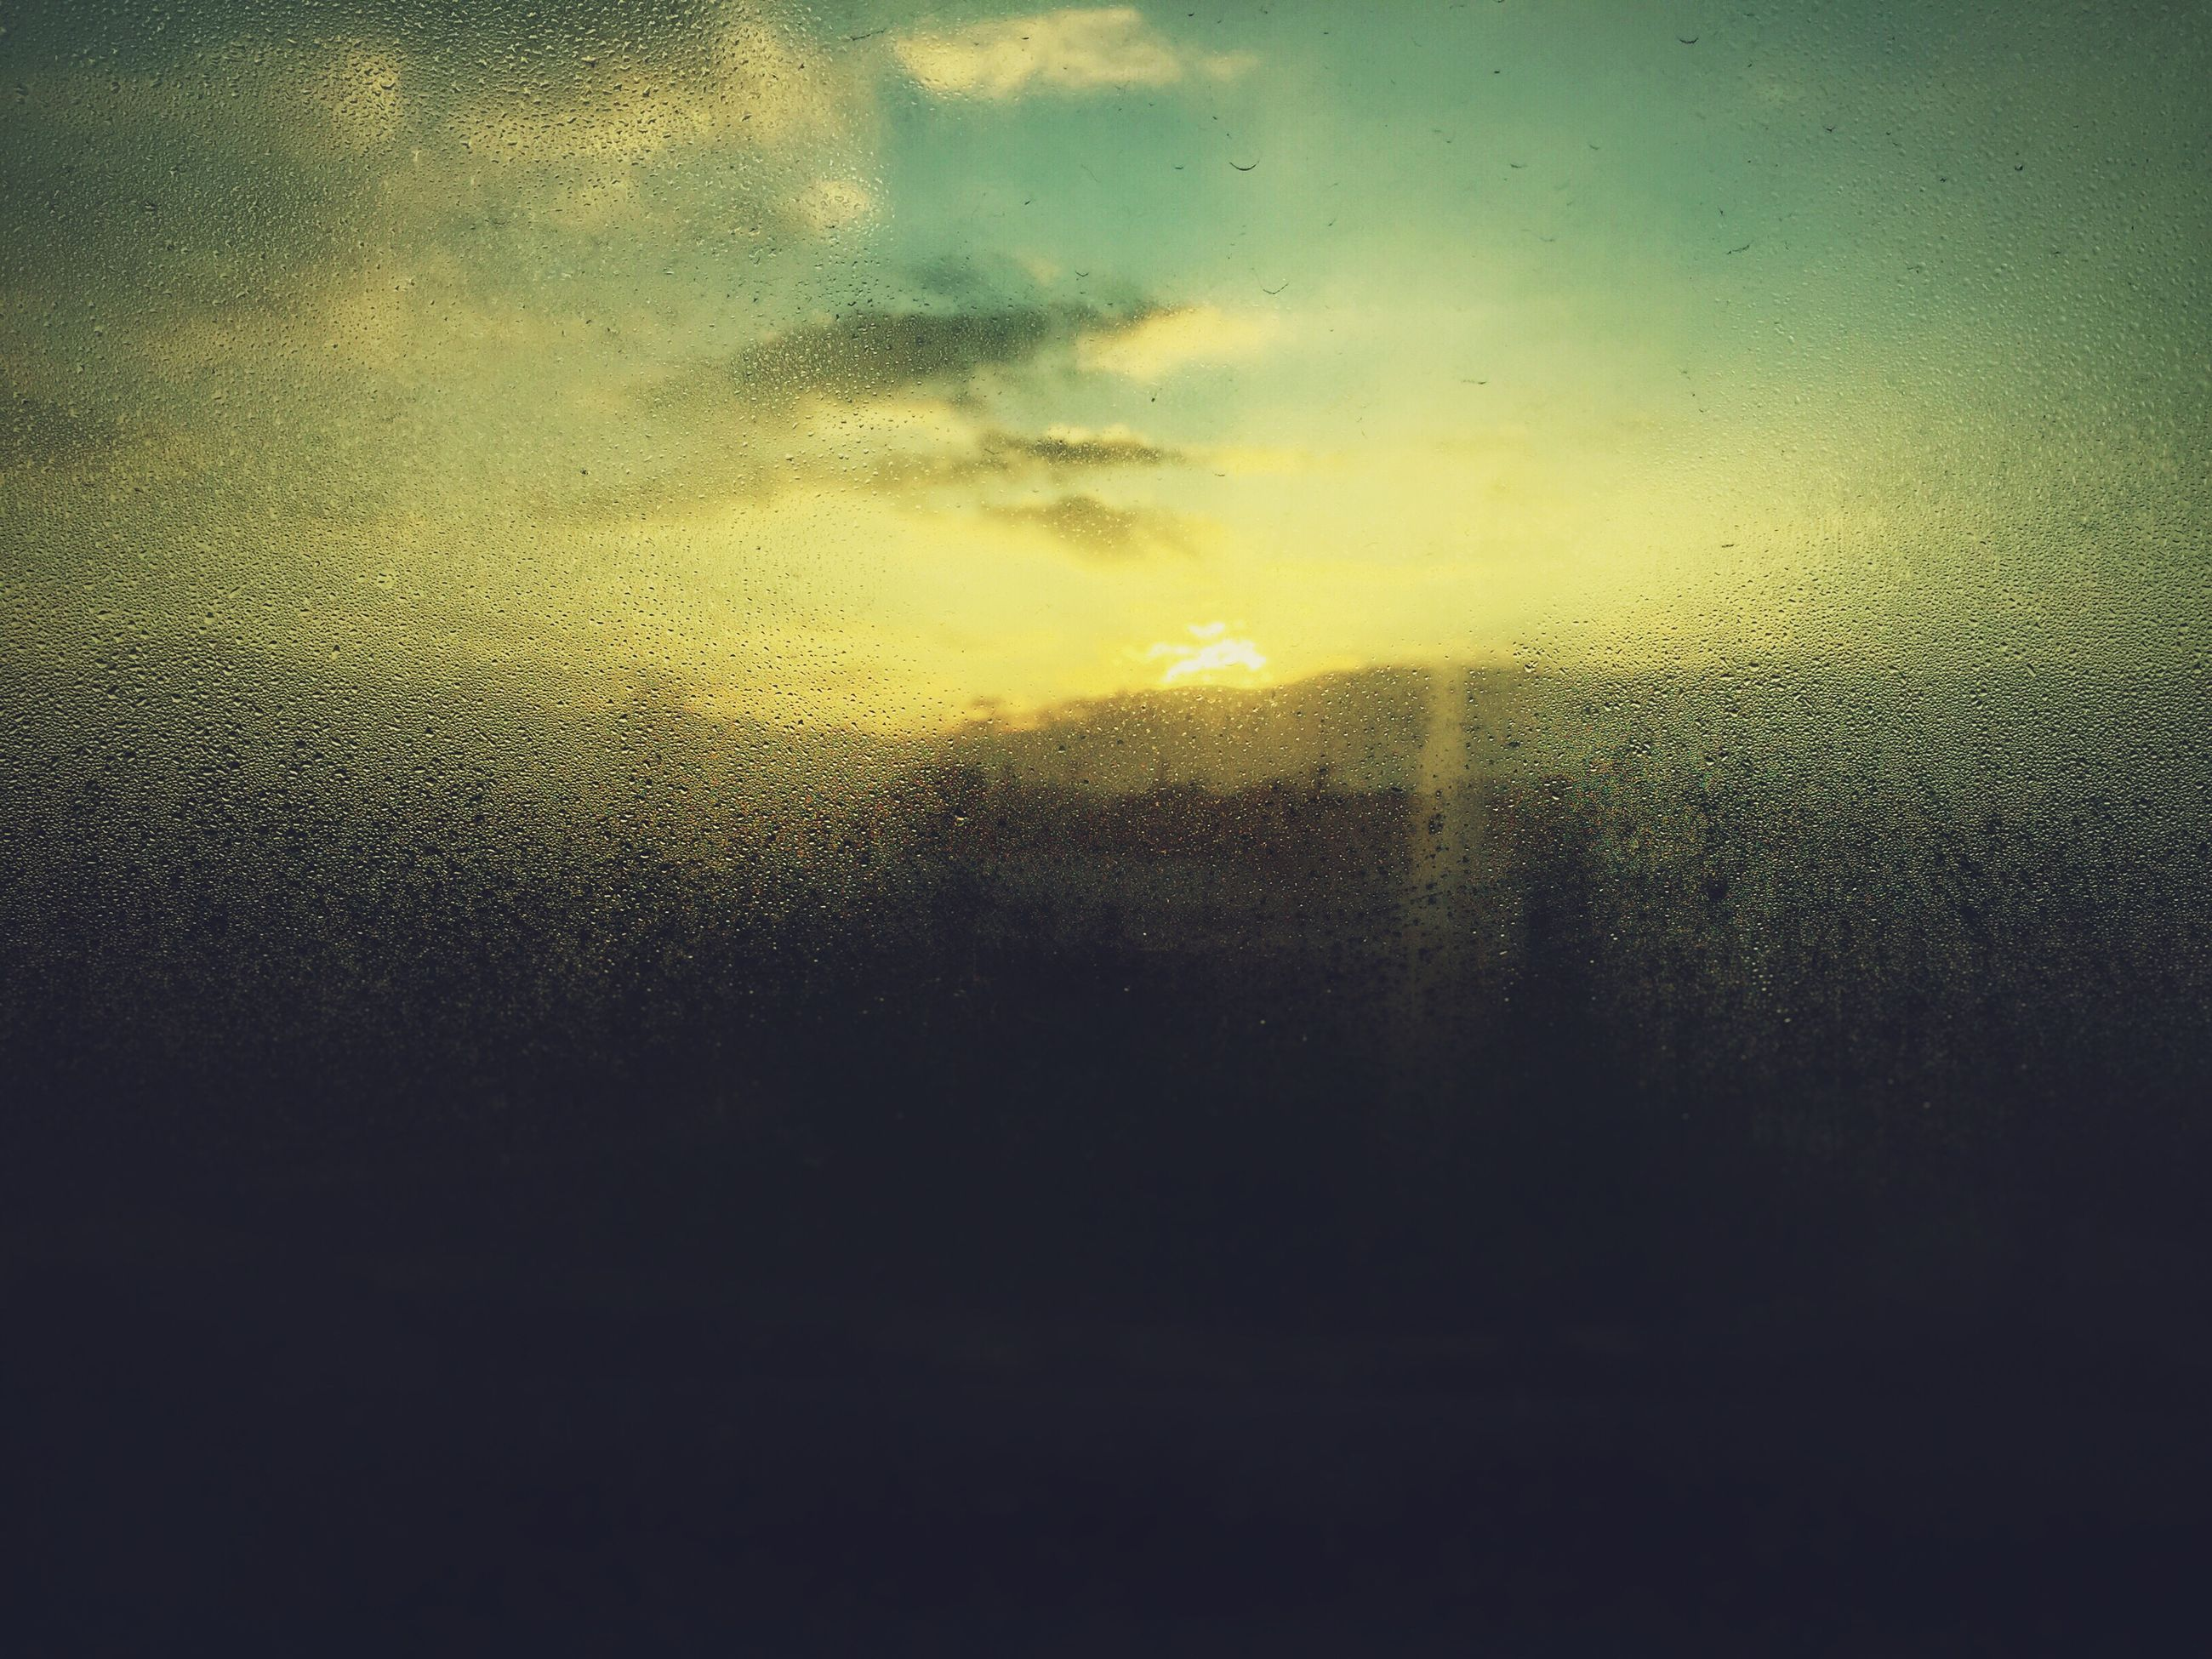 window, drop, wet, transparent, water, glass - material, sunset, rain, sky, indoors, weather, raindrop, backgrounds, full frame, glass, season, focus on foreground, silhouette, no people, cloud - sky